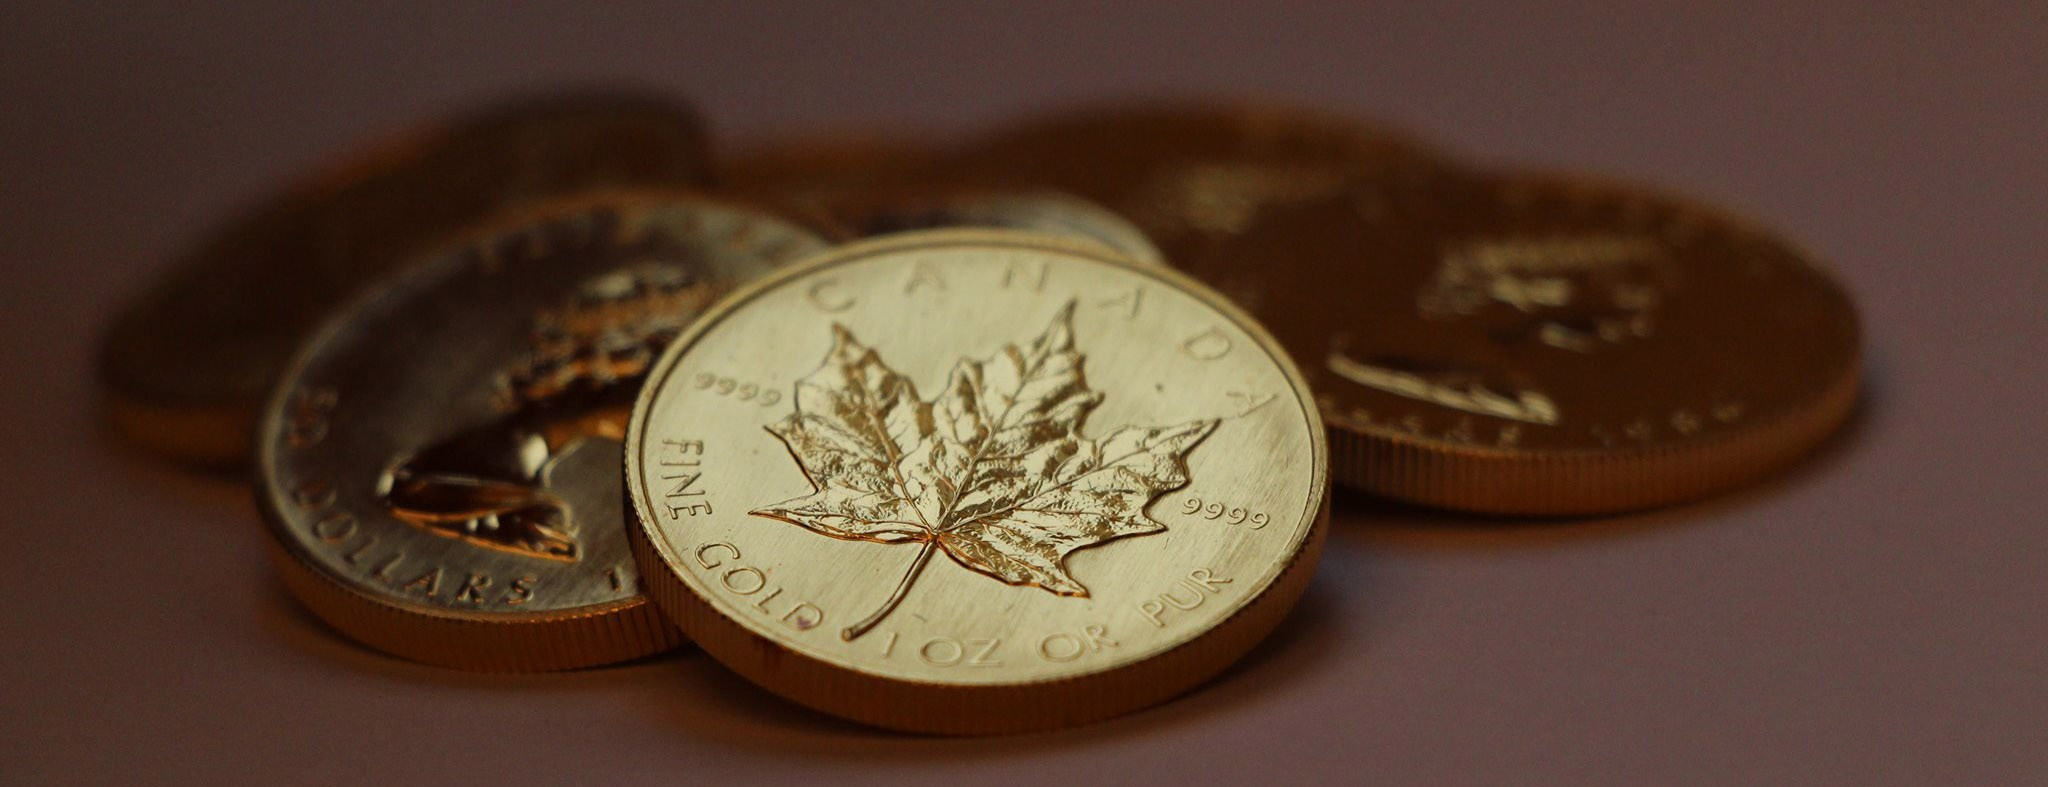 gold coins maple leaf